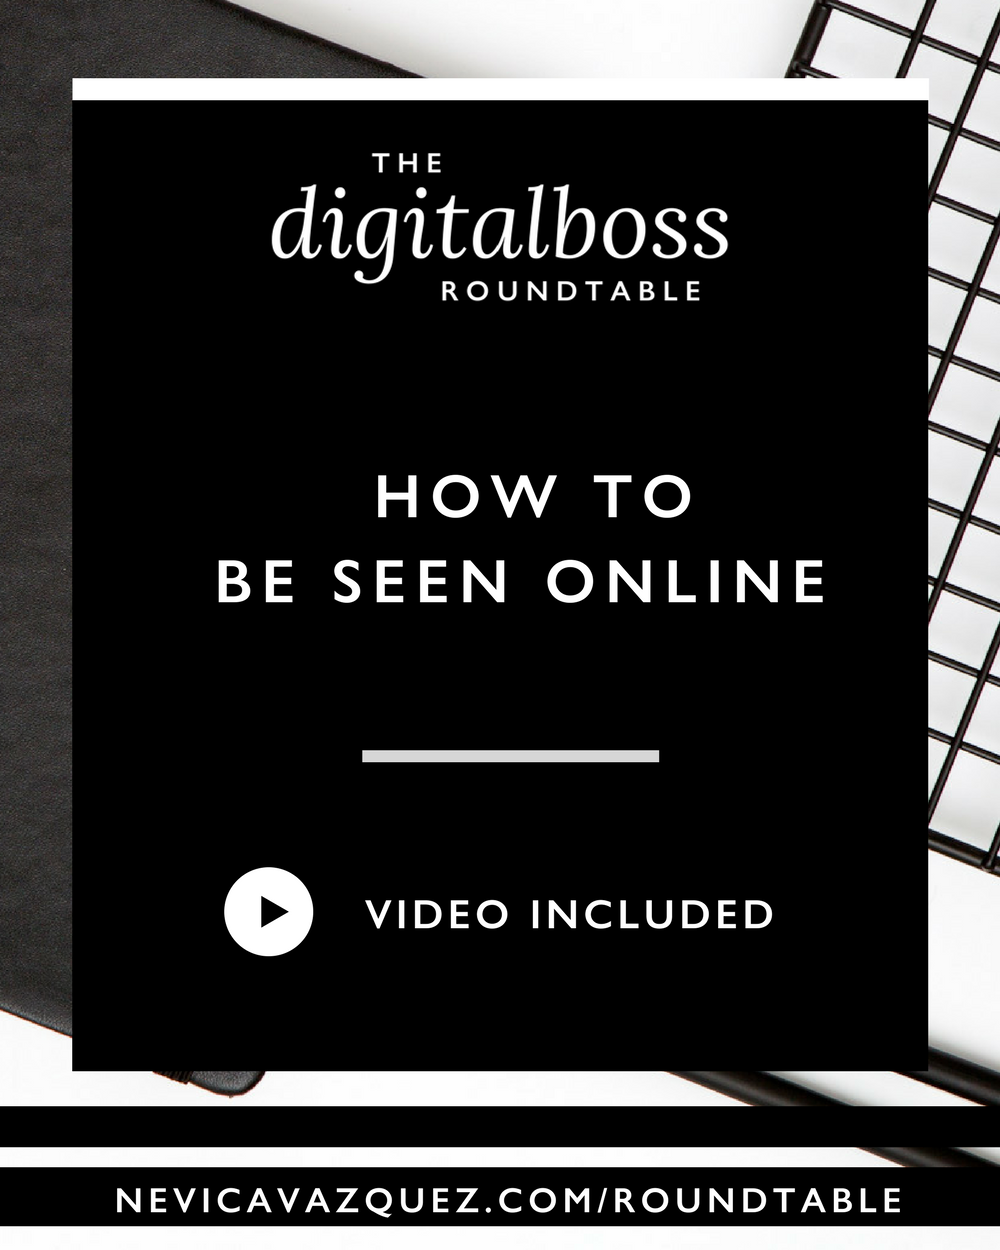 roundtable blog template (1)